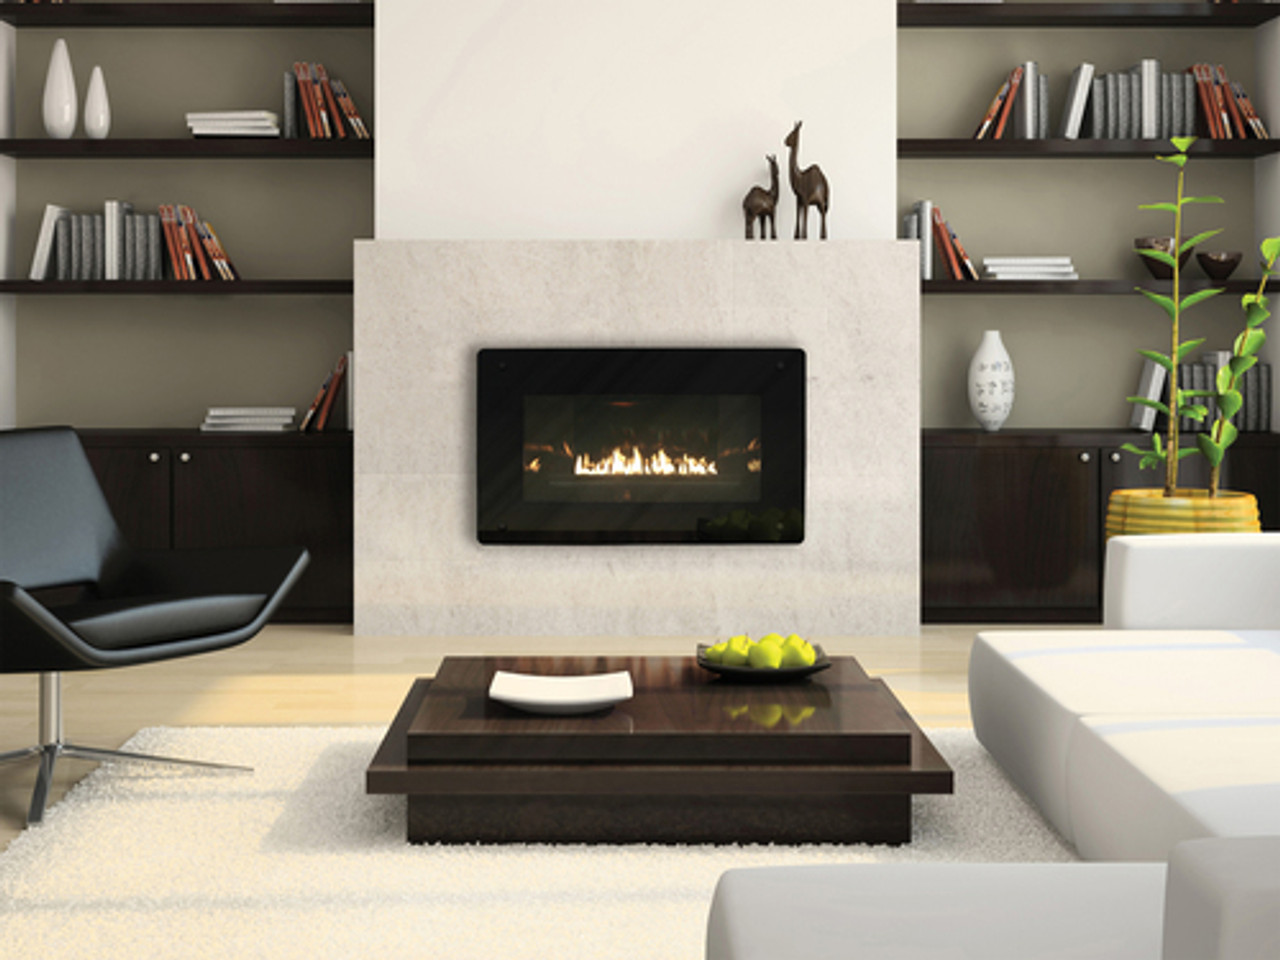 Empire Loft Vent-Free Cleanface Insert/Fireplace with Barrier - Zero-Clearance - Small - Intermittent Pilot Control - Btu 20,000 - VFL20IN92